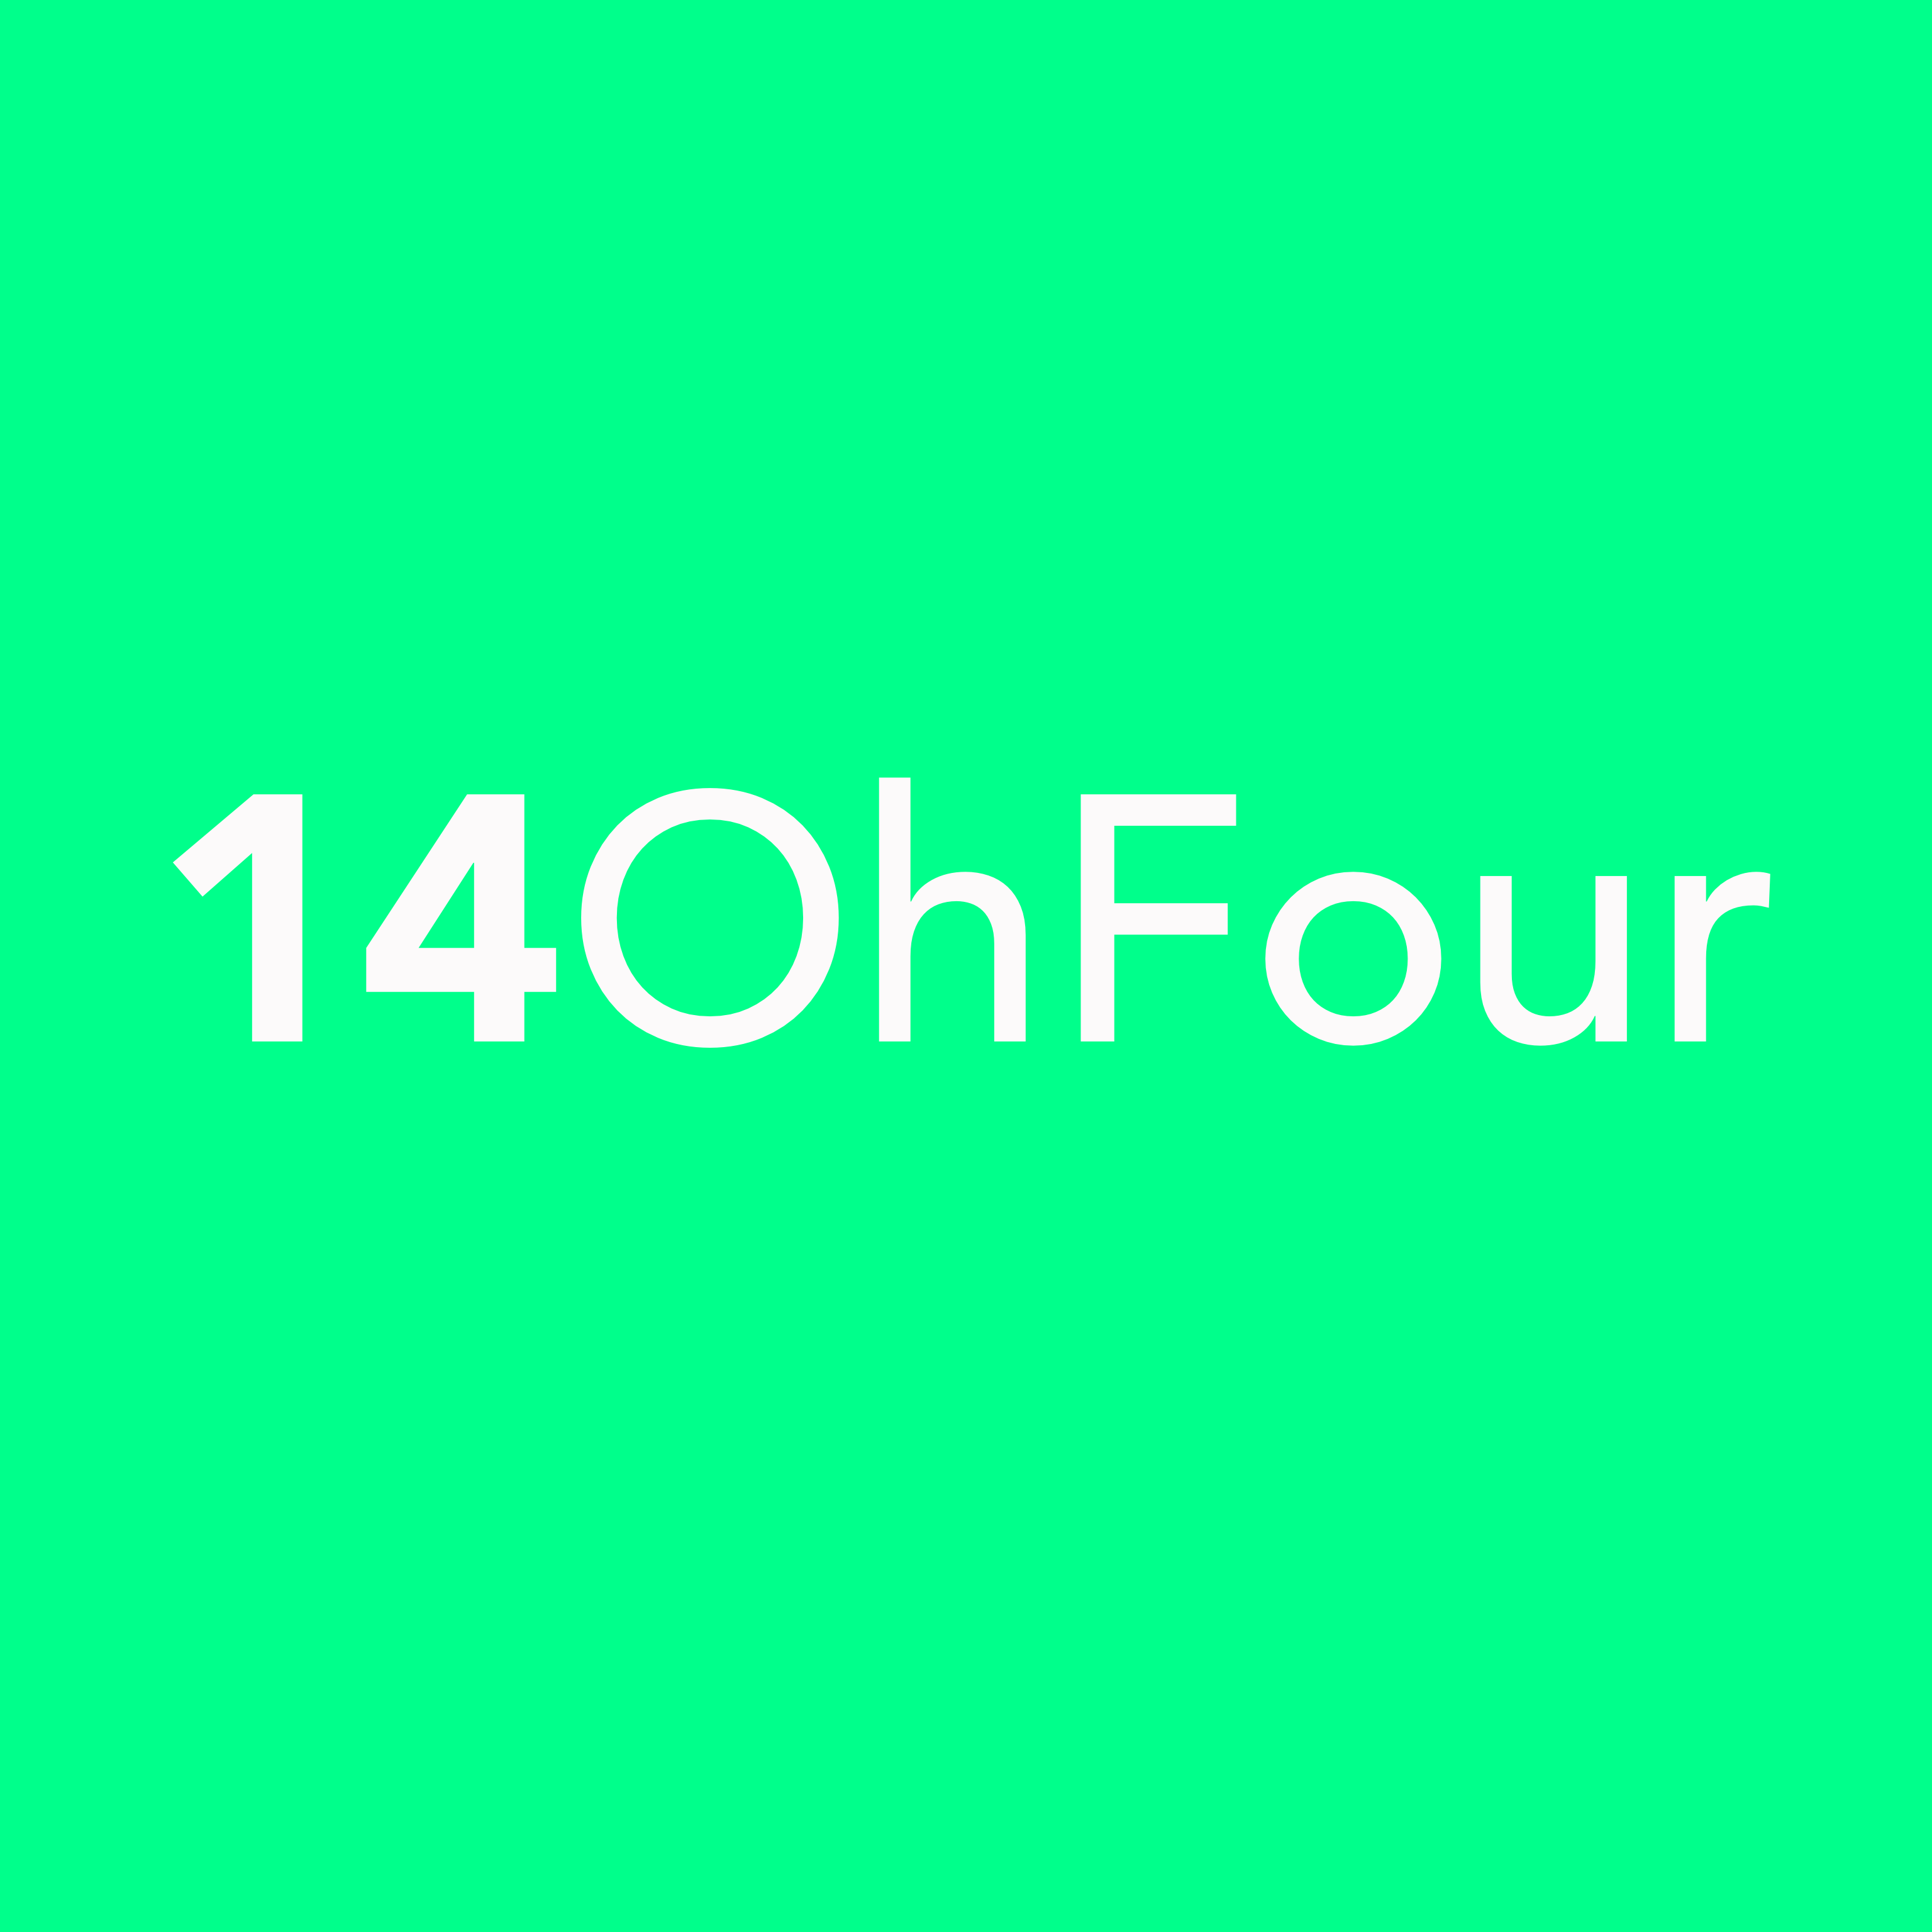 14OhFour footer logo